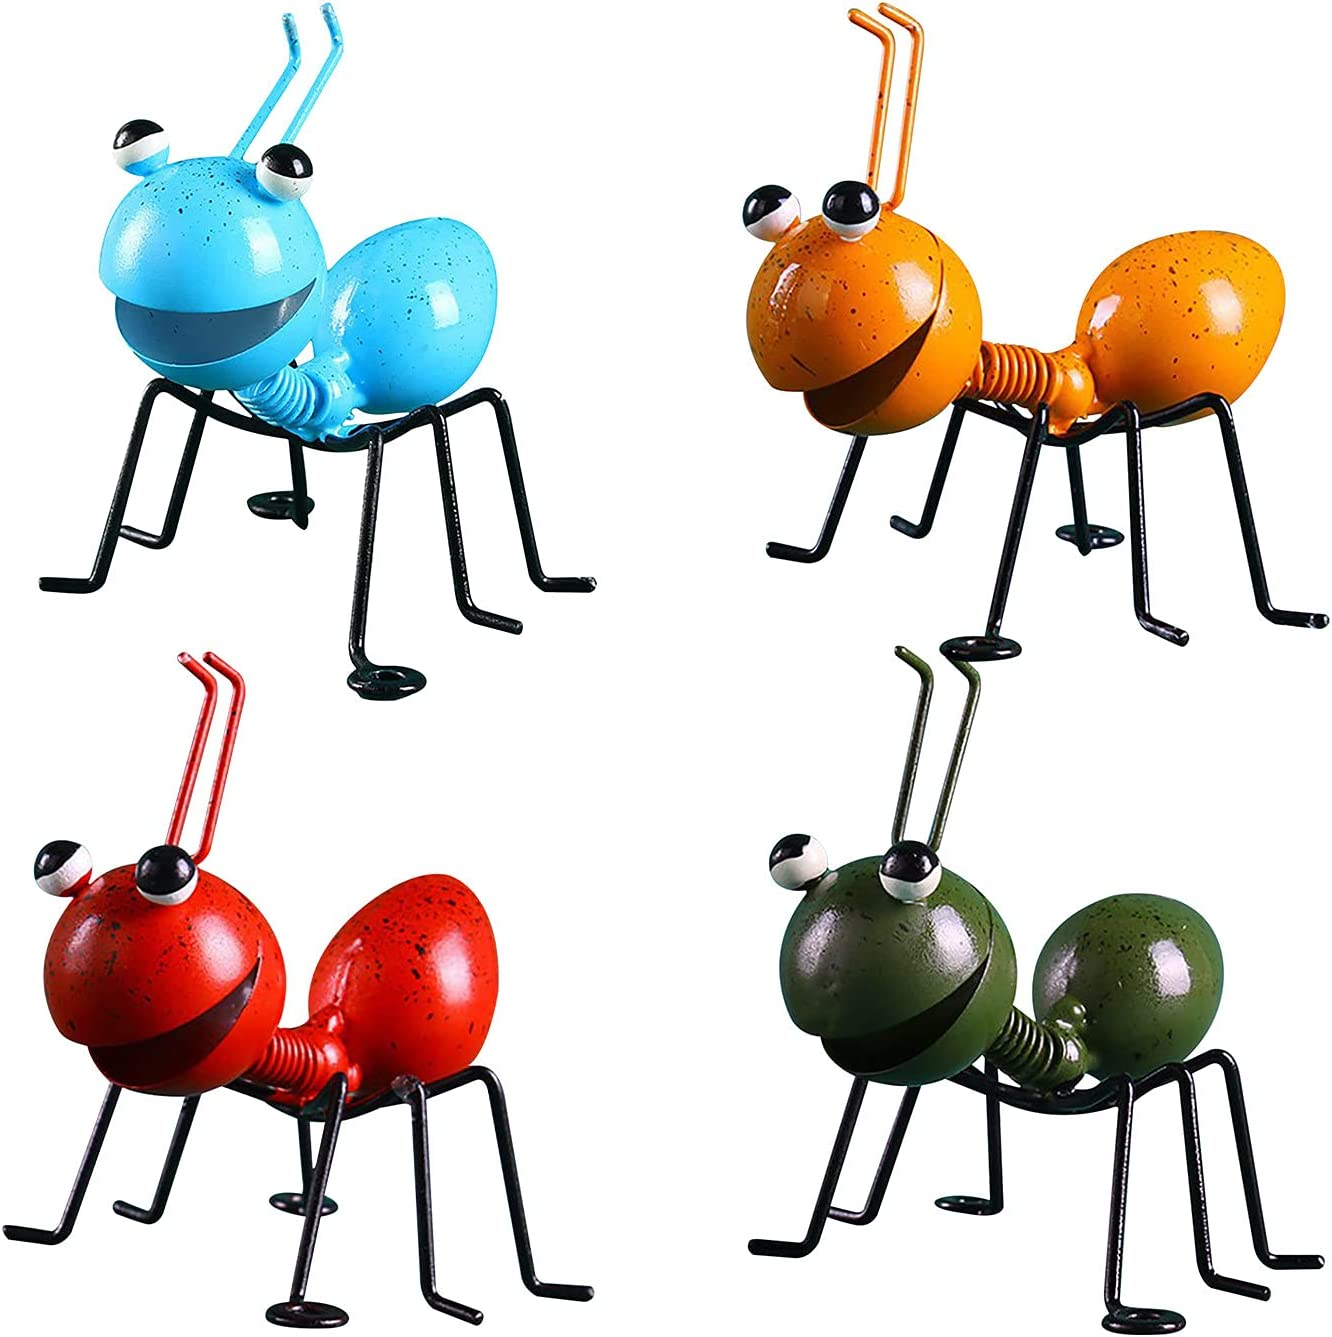 4PCS Ant Garden Decor Set Garden Metal Art Ant Ornament Hanging Wall Garden Lawn Decoration Indoor and Outdoor Home Decoration Sculpture Outdoor Garden Home Room Table Decor (Blue,Yellow,Red,Black)